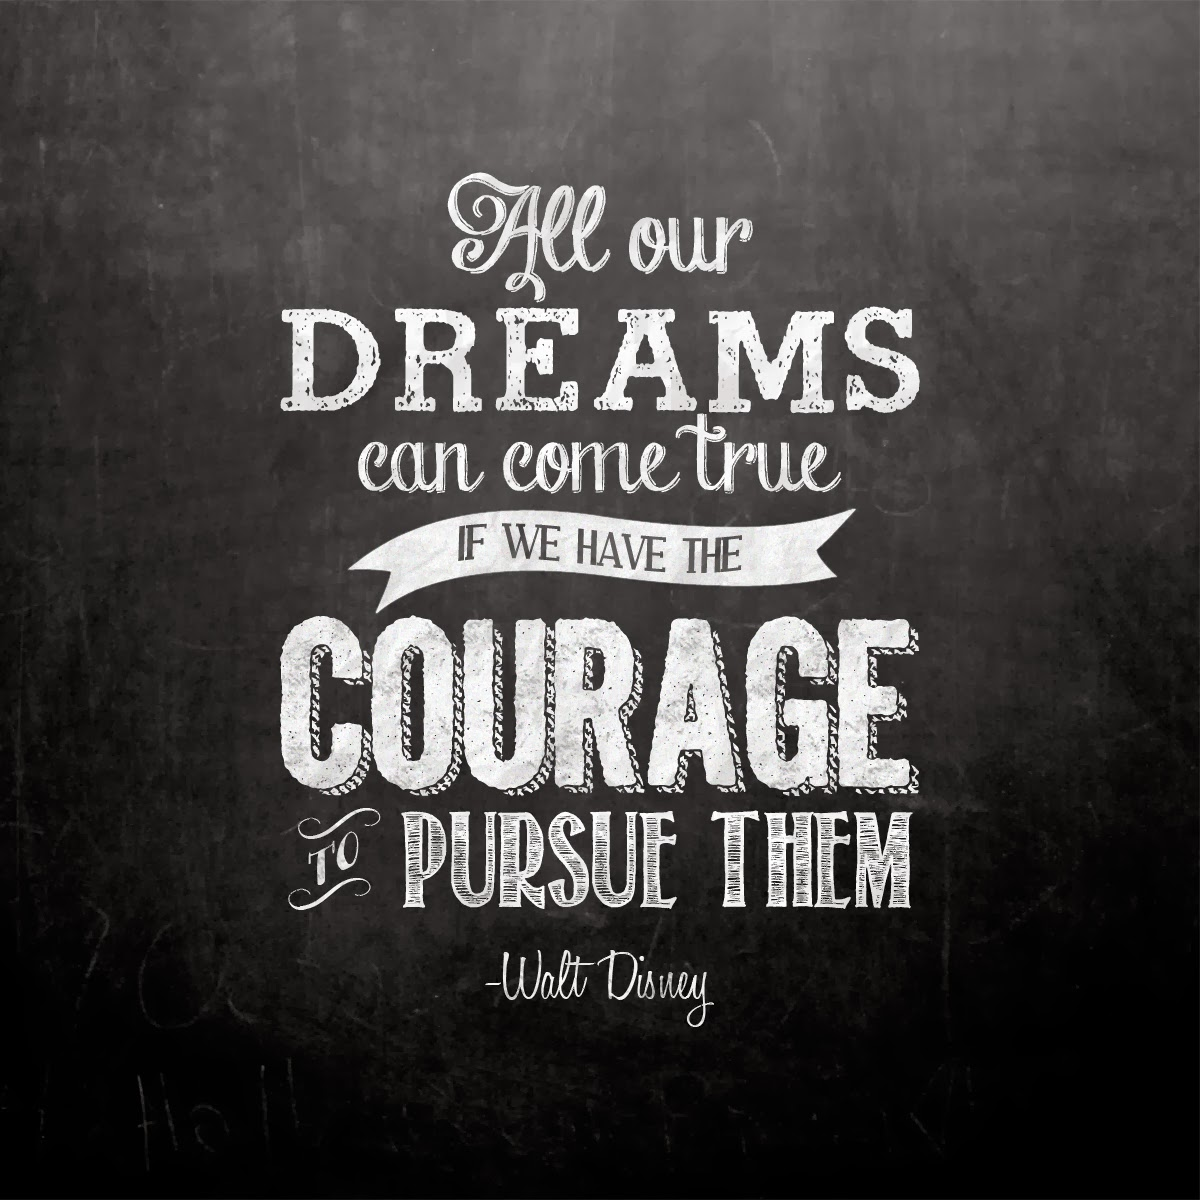 Dream Quotes: Walt Disney Quotes About Dreams. QuotesGram